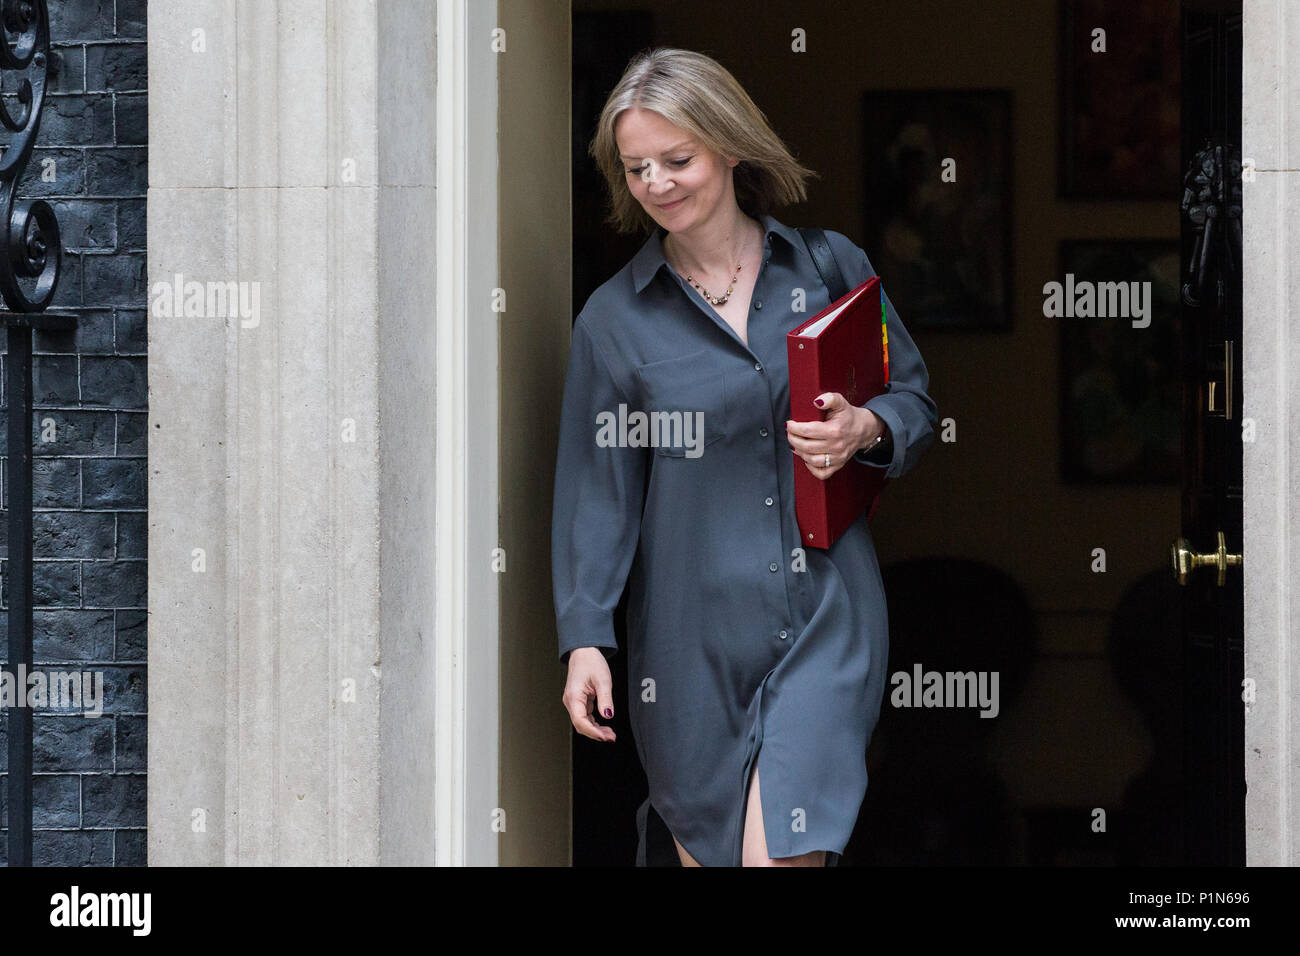 London, UK. 12th June, 2018. Elizabeth Truss MP, Chief Secretary to the Treasury, leaves 10 Downing Street following a Cabinet meeting held prior to the House of Commons debate and votes on amendments proposed by the House of Lords to the EU Withdrawal Bill. Credit: Mark Kerrison/Alamy Live NewsStock Photo